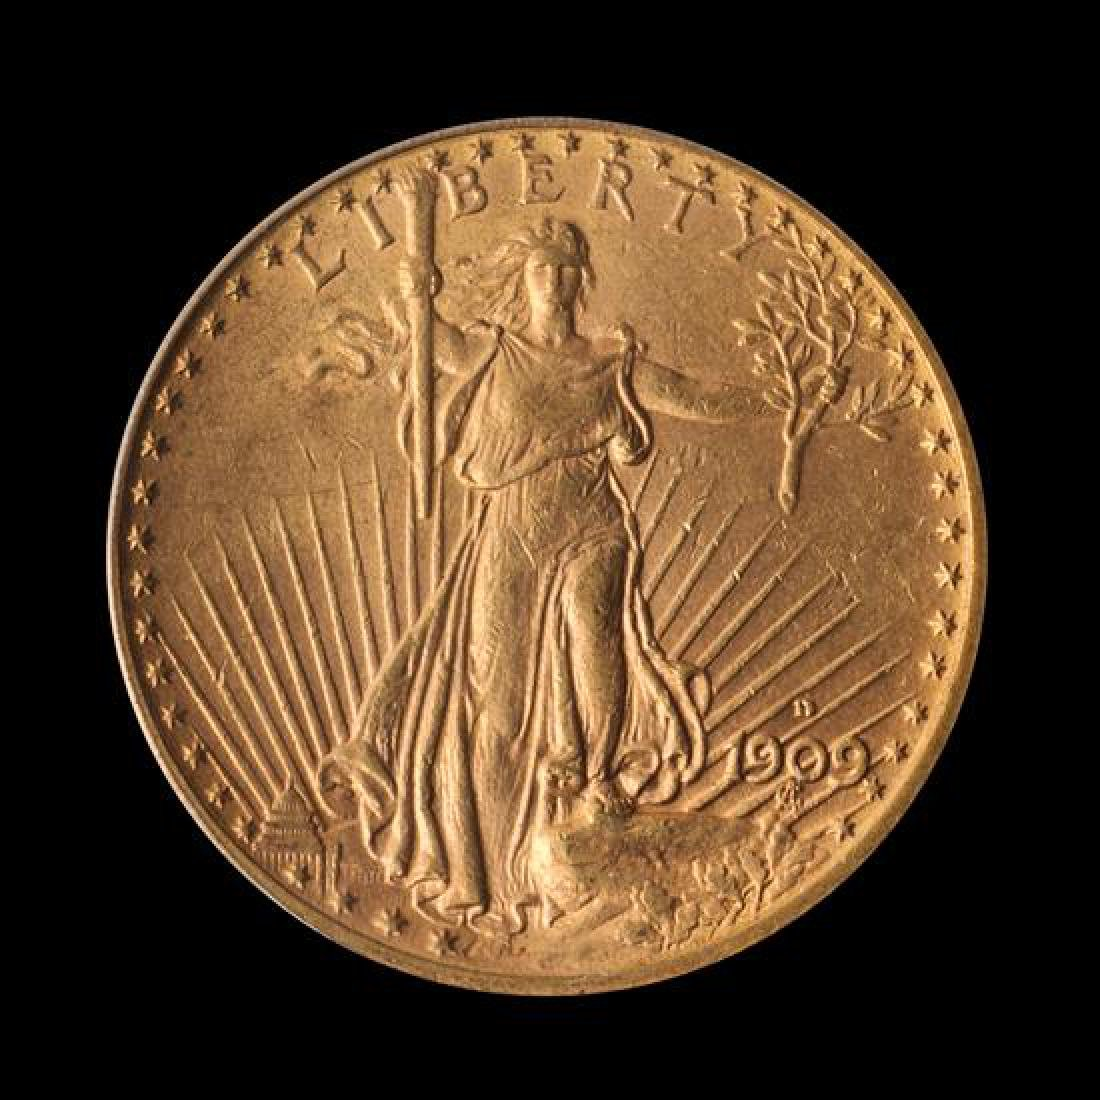 A United States 1909-D Saint-Gaudens $20 Gold Coin